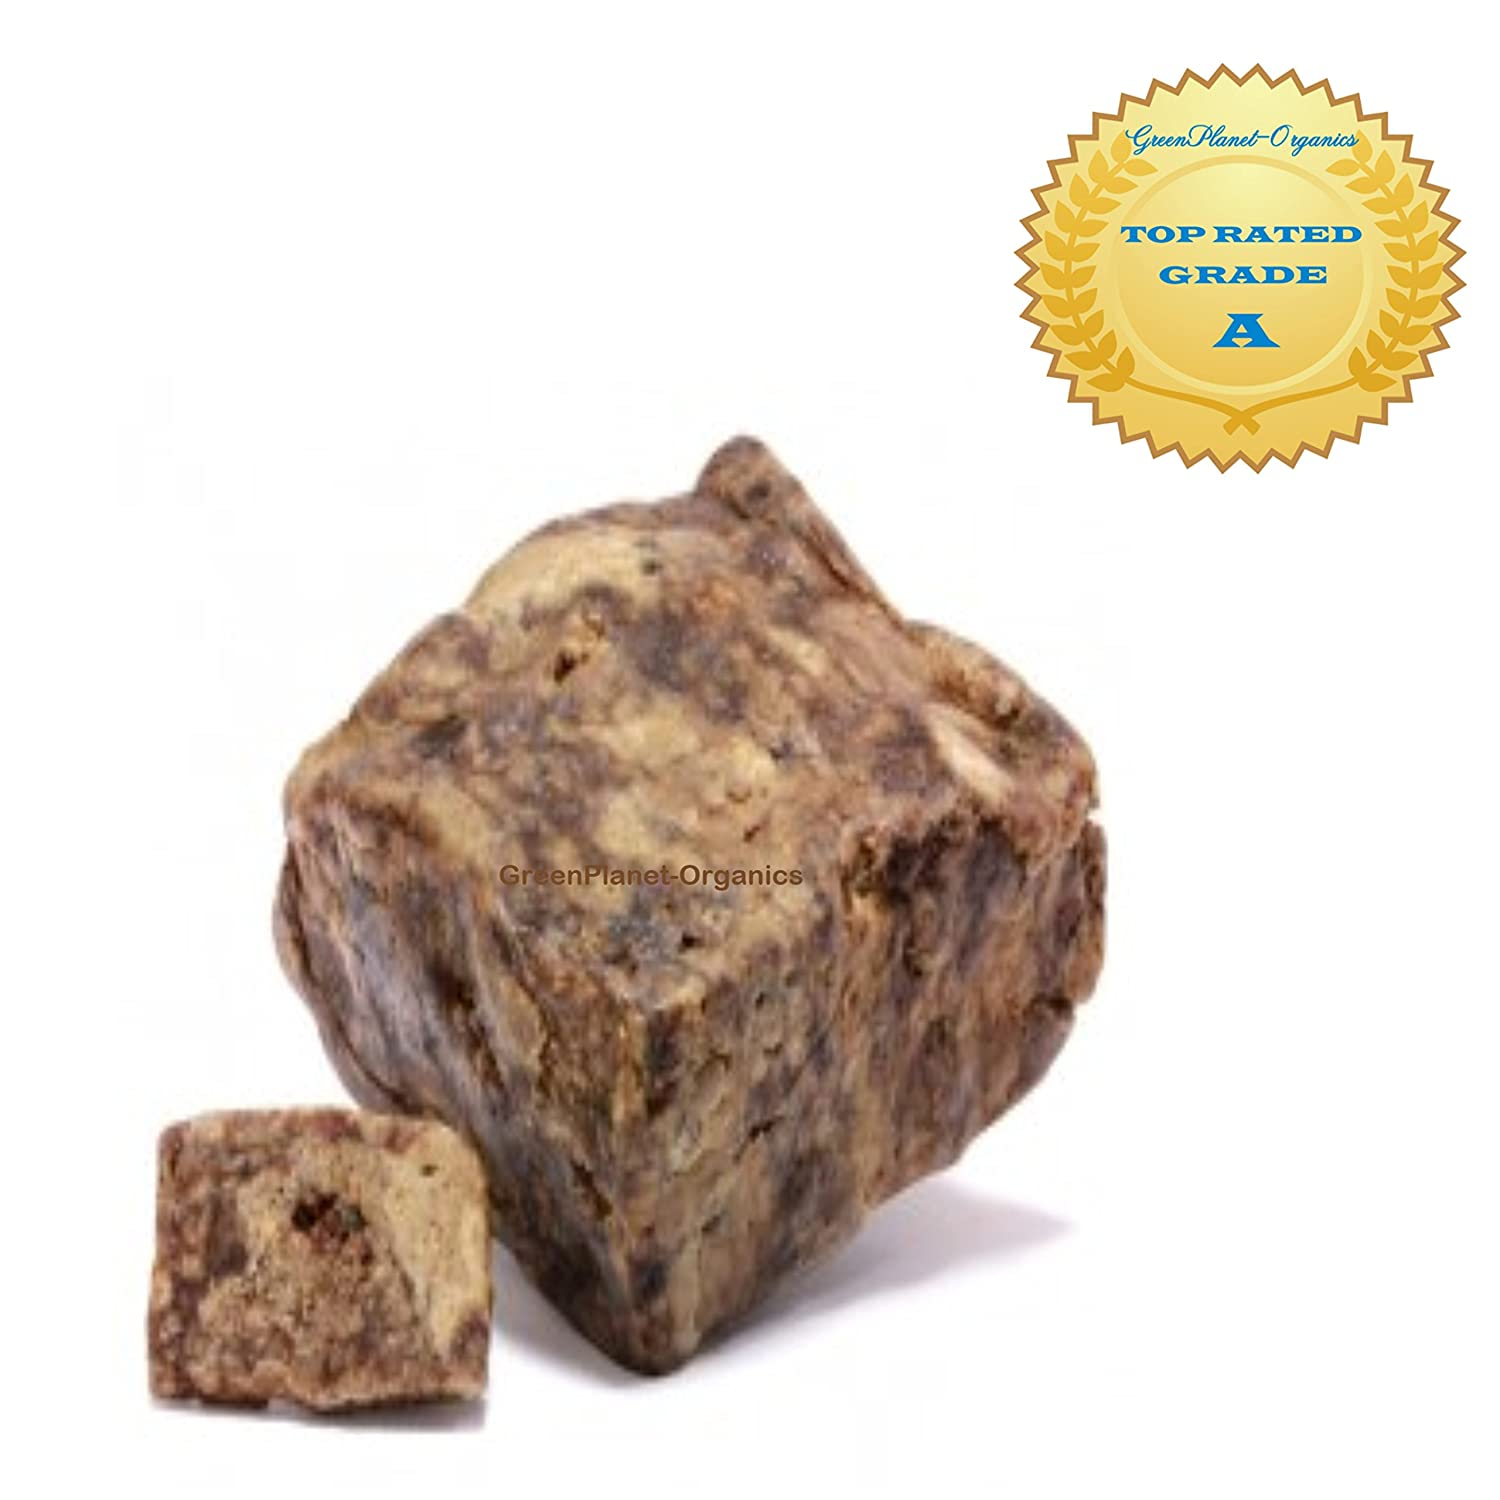 10 LBS Raw African Black Soap From Ghana. 100% Vegan, Color & Fragrance Free (Genuine batch ships & sells from GreenPlanet-Organics)